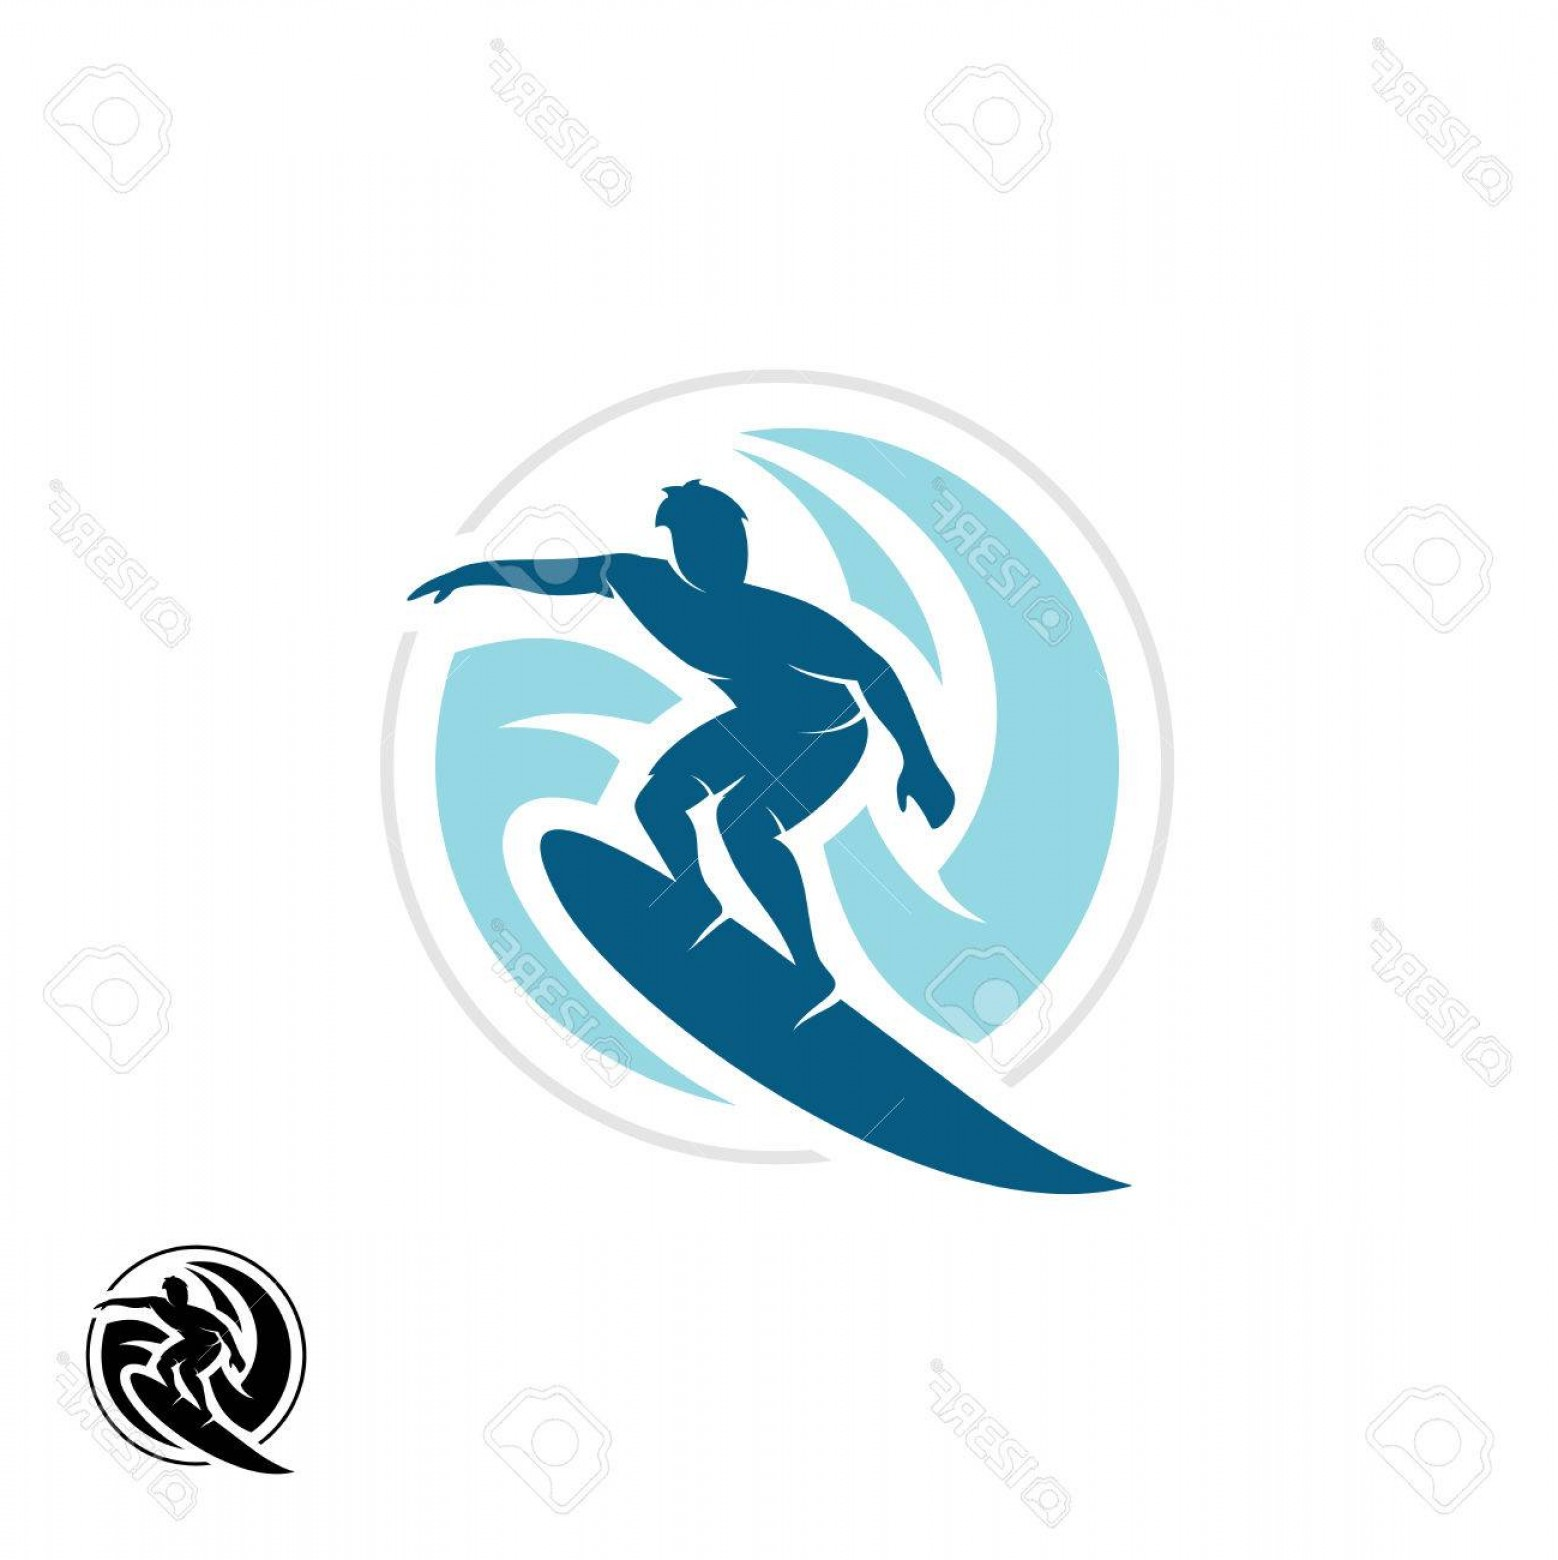 Waves With Surfer Silhouette Vector: Photostock Vector Surf With Man Silhouette Board And Sea Waves Water Twirl In A Round Shape